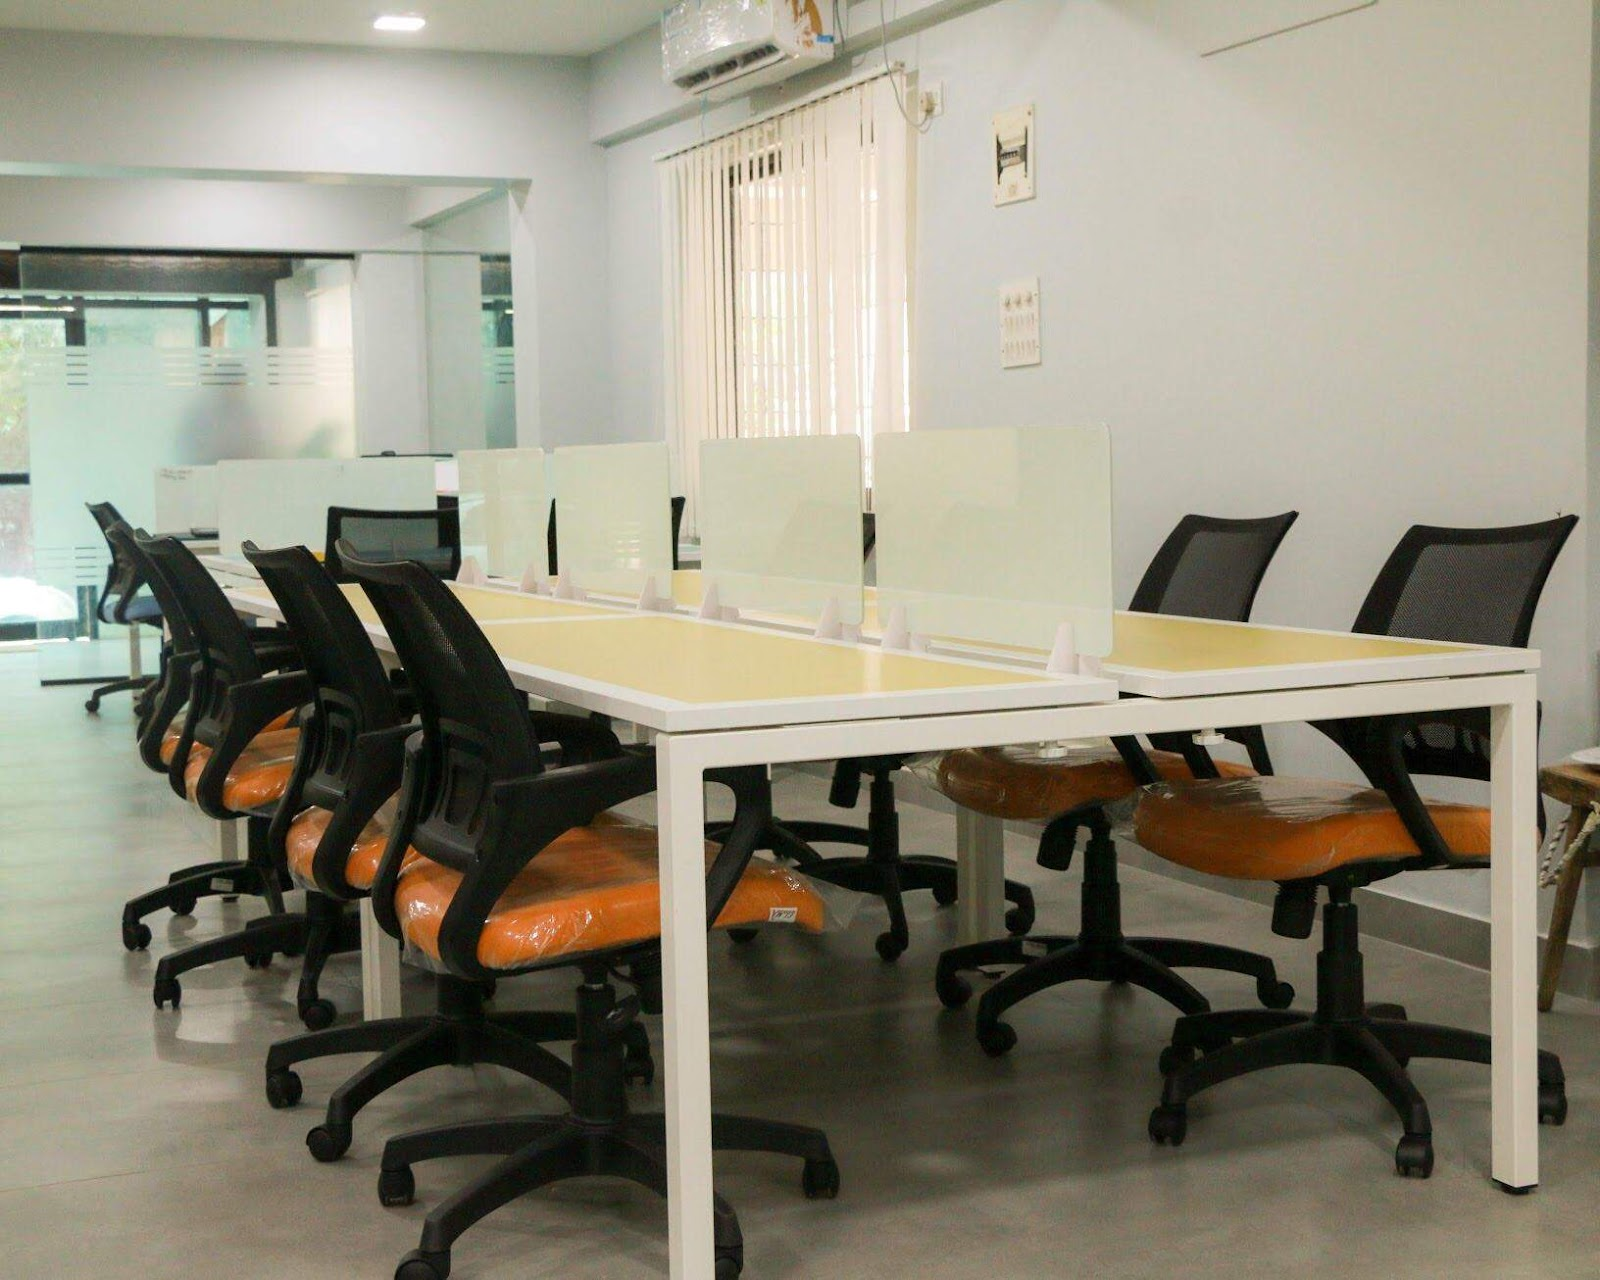 BUNCHWORKS COWORKING - COWORKING SPACE IN BANGALORE